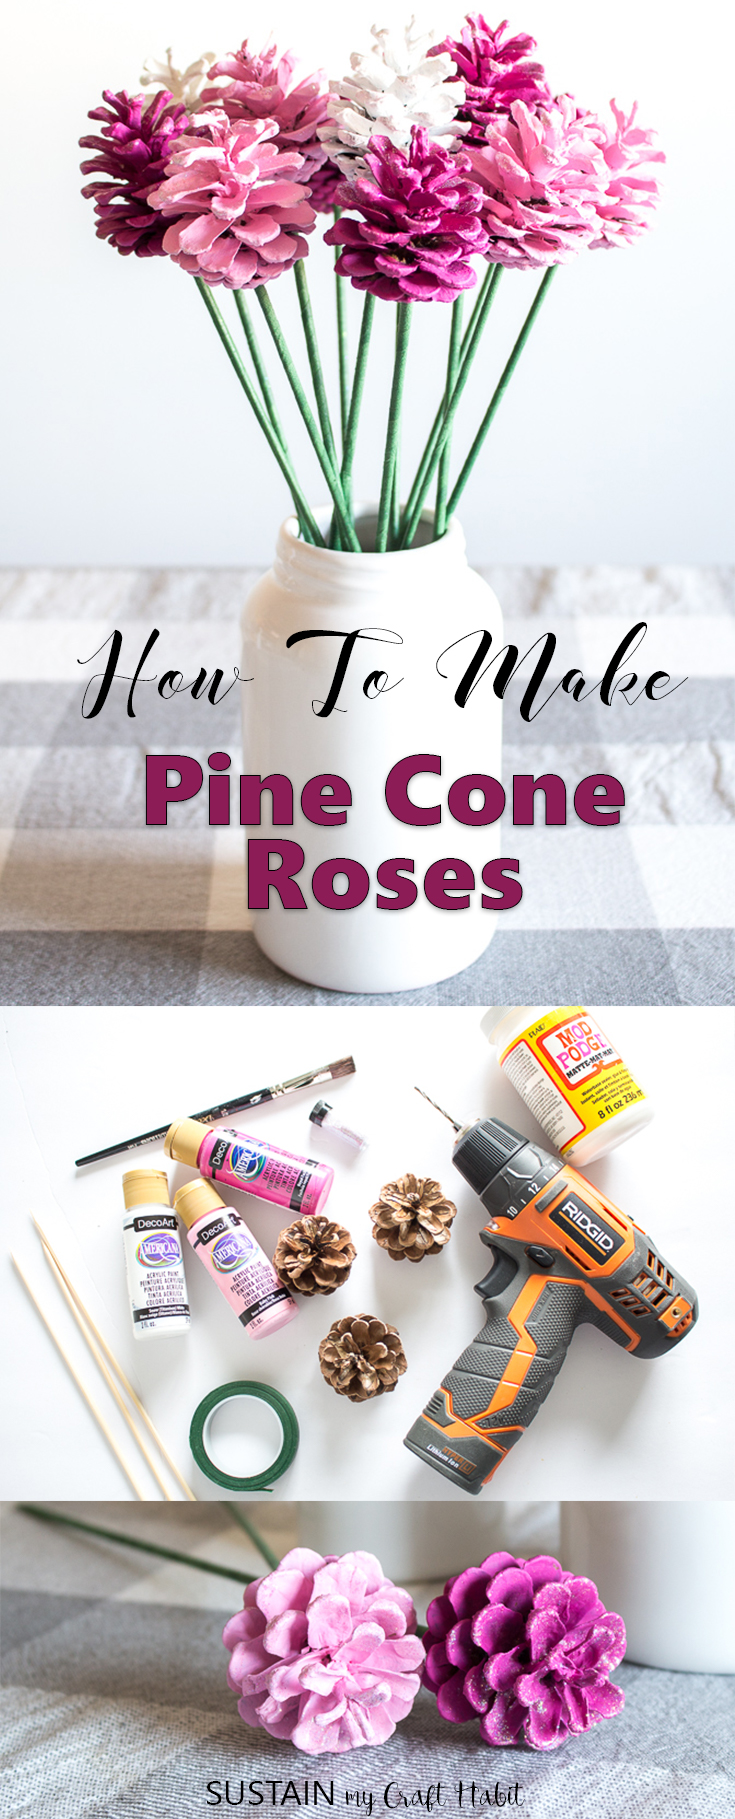 Supplies needed to make pine cone roses